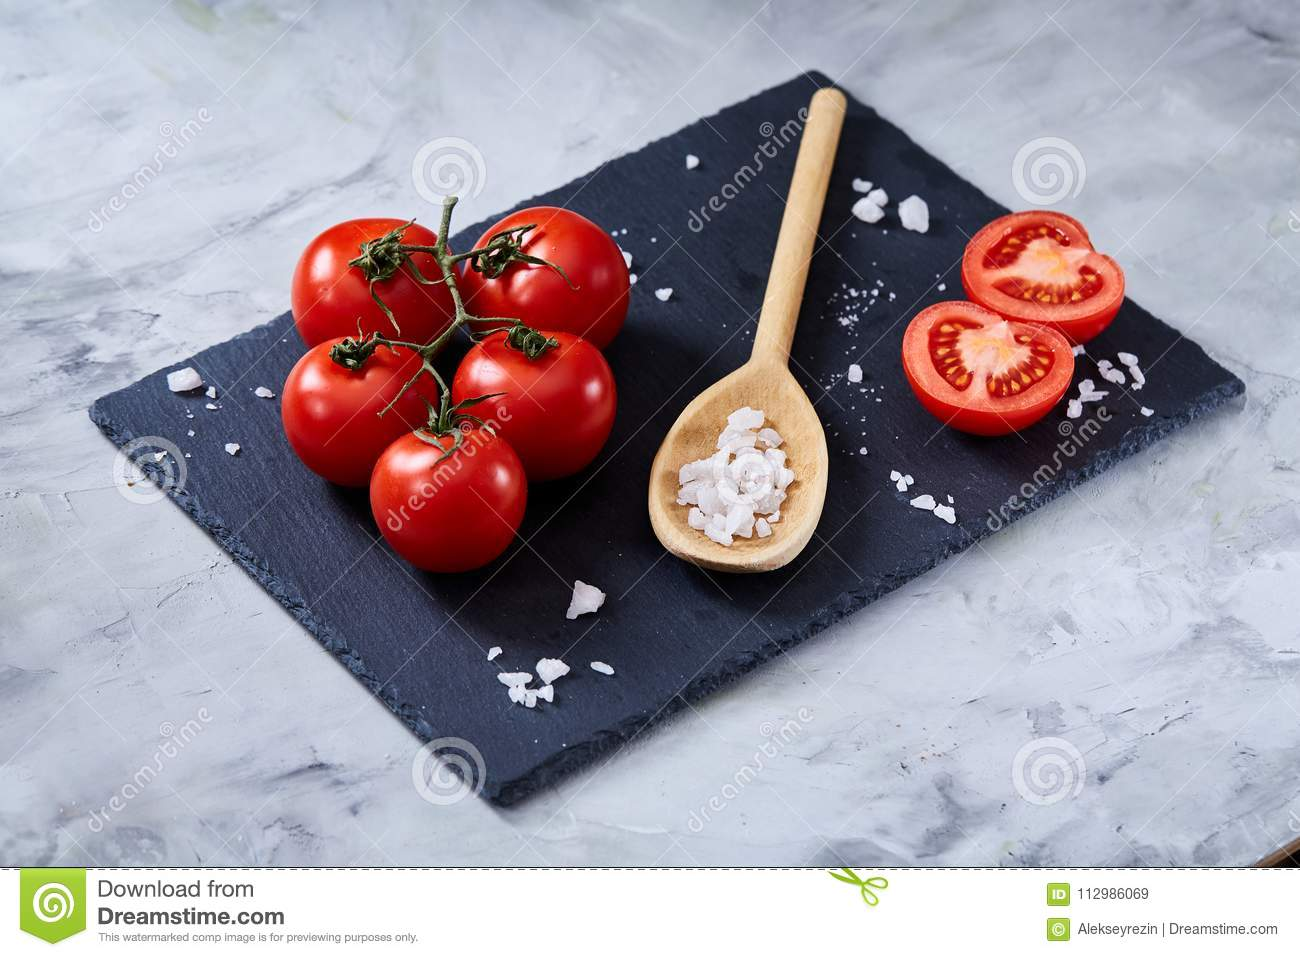 Fresh tomatoes and a spoon of salt on black stony board over white background, close-up, selective focus.